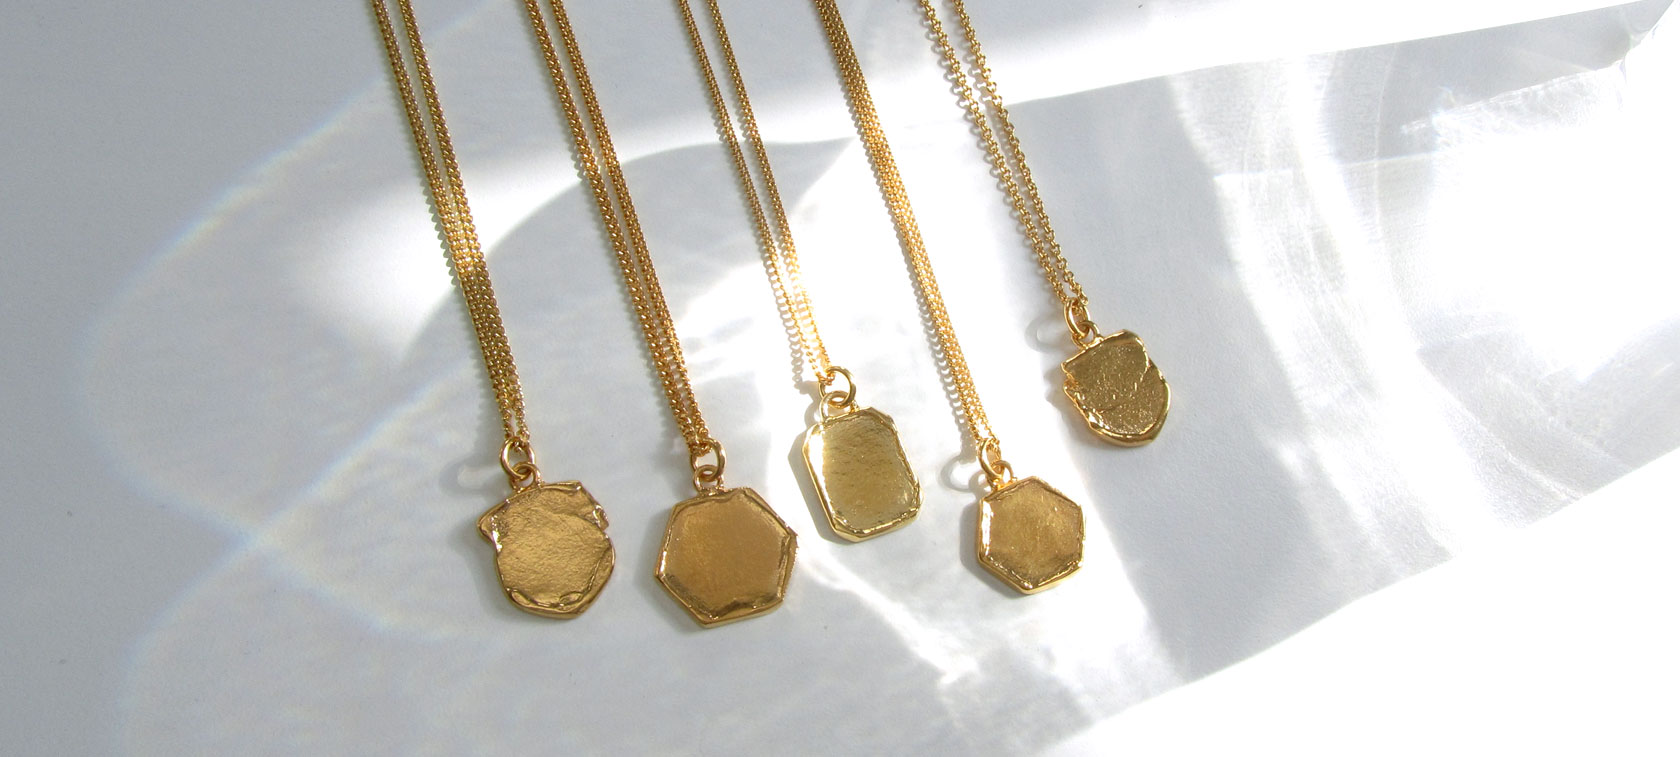 BANNER-JULY-21-MAIN-EDIT Scroll Necklace Gold Vermeil